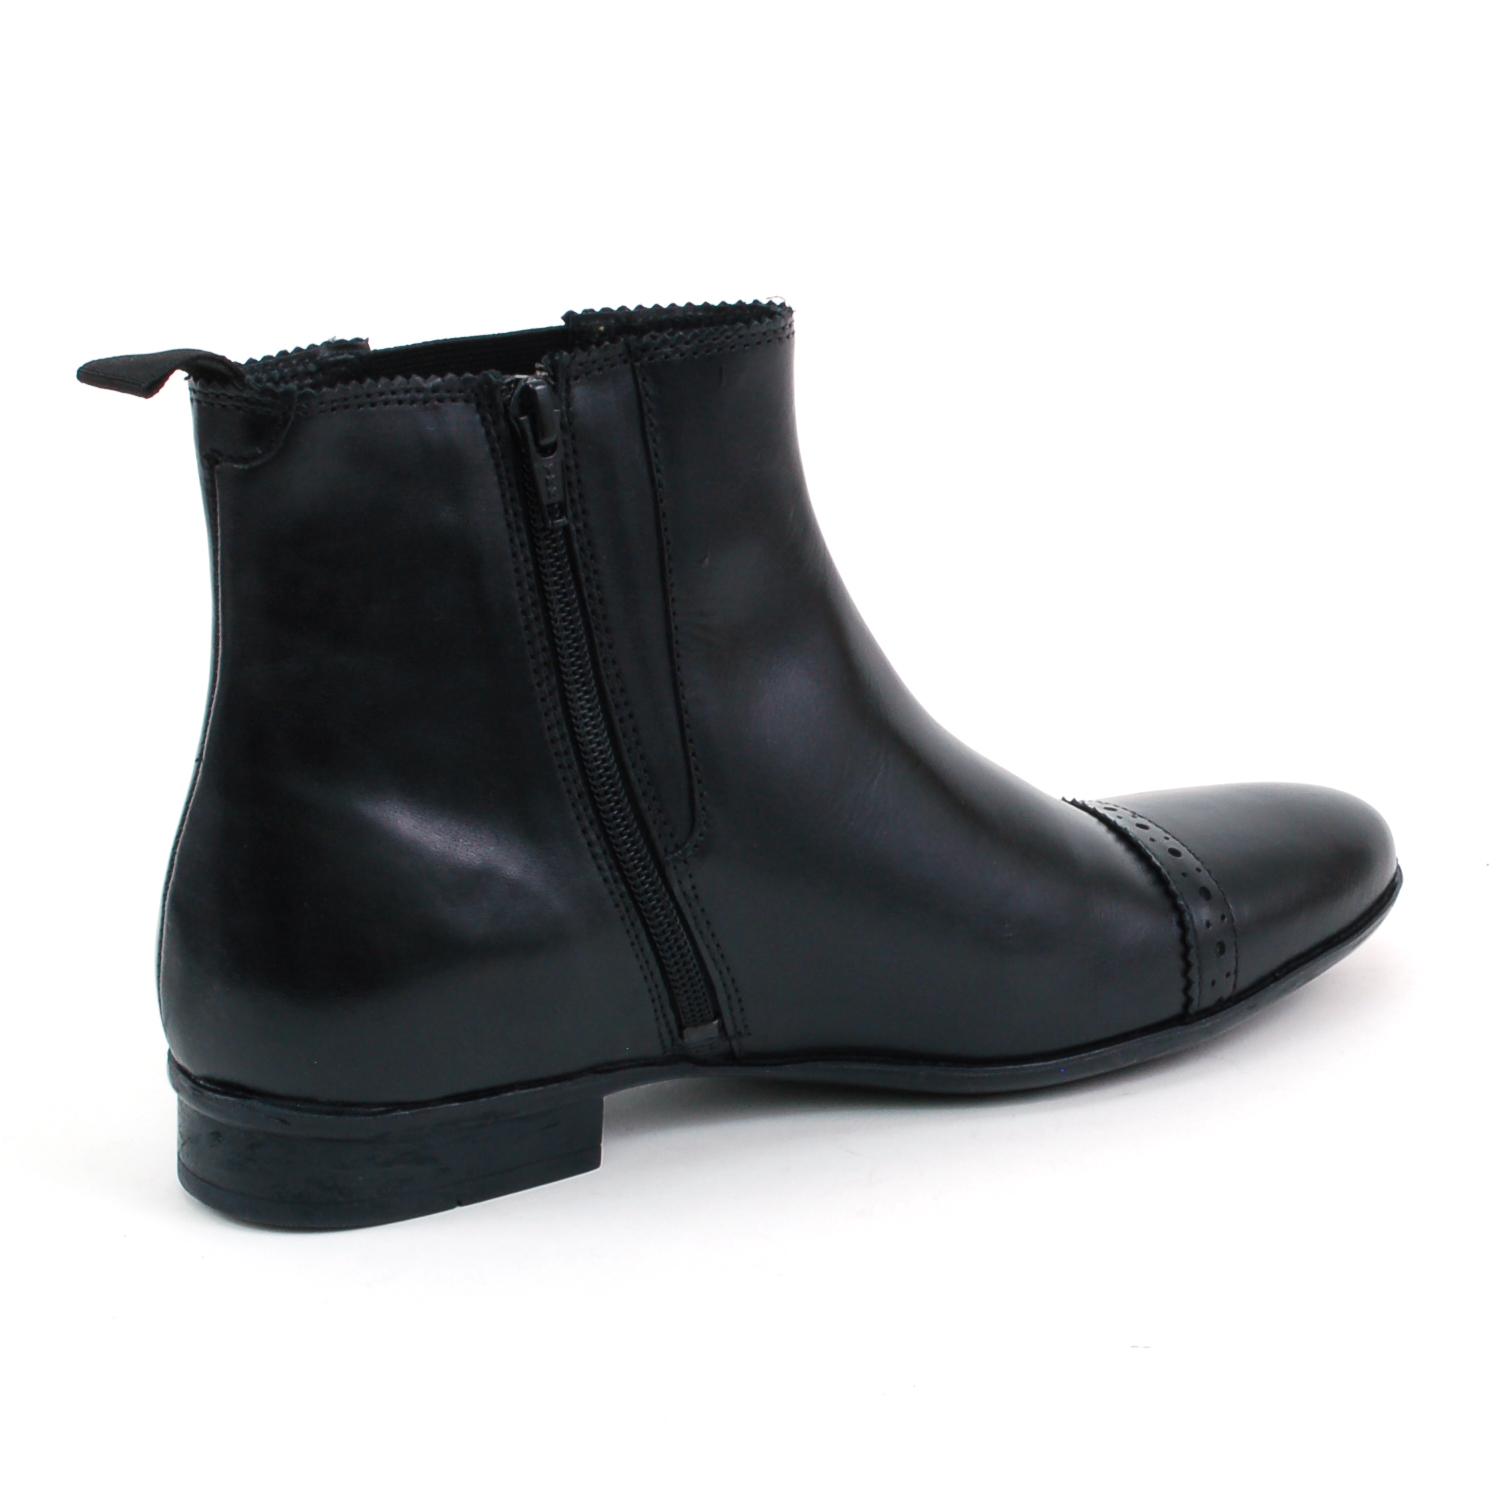 Mens Boots With Zipper